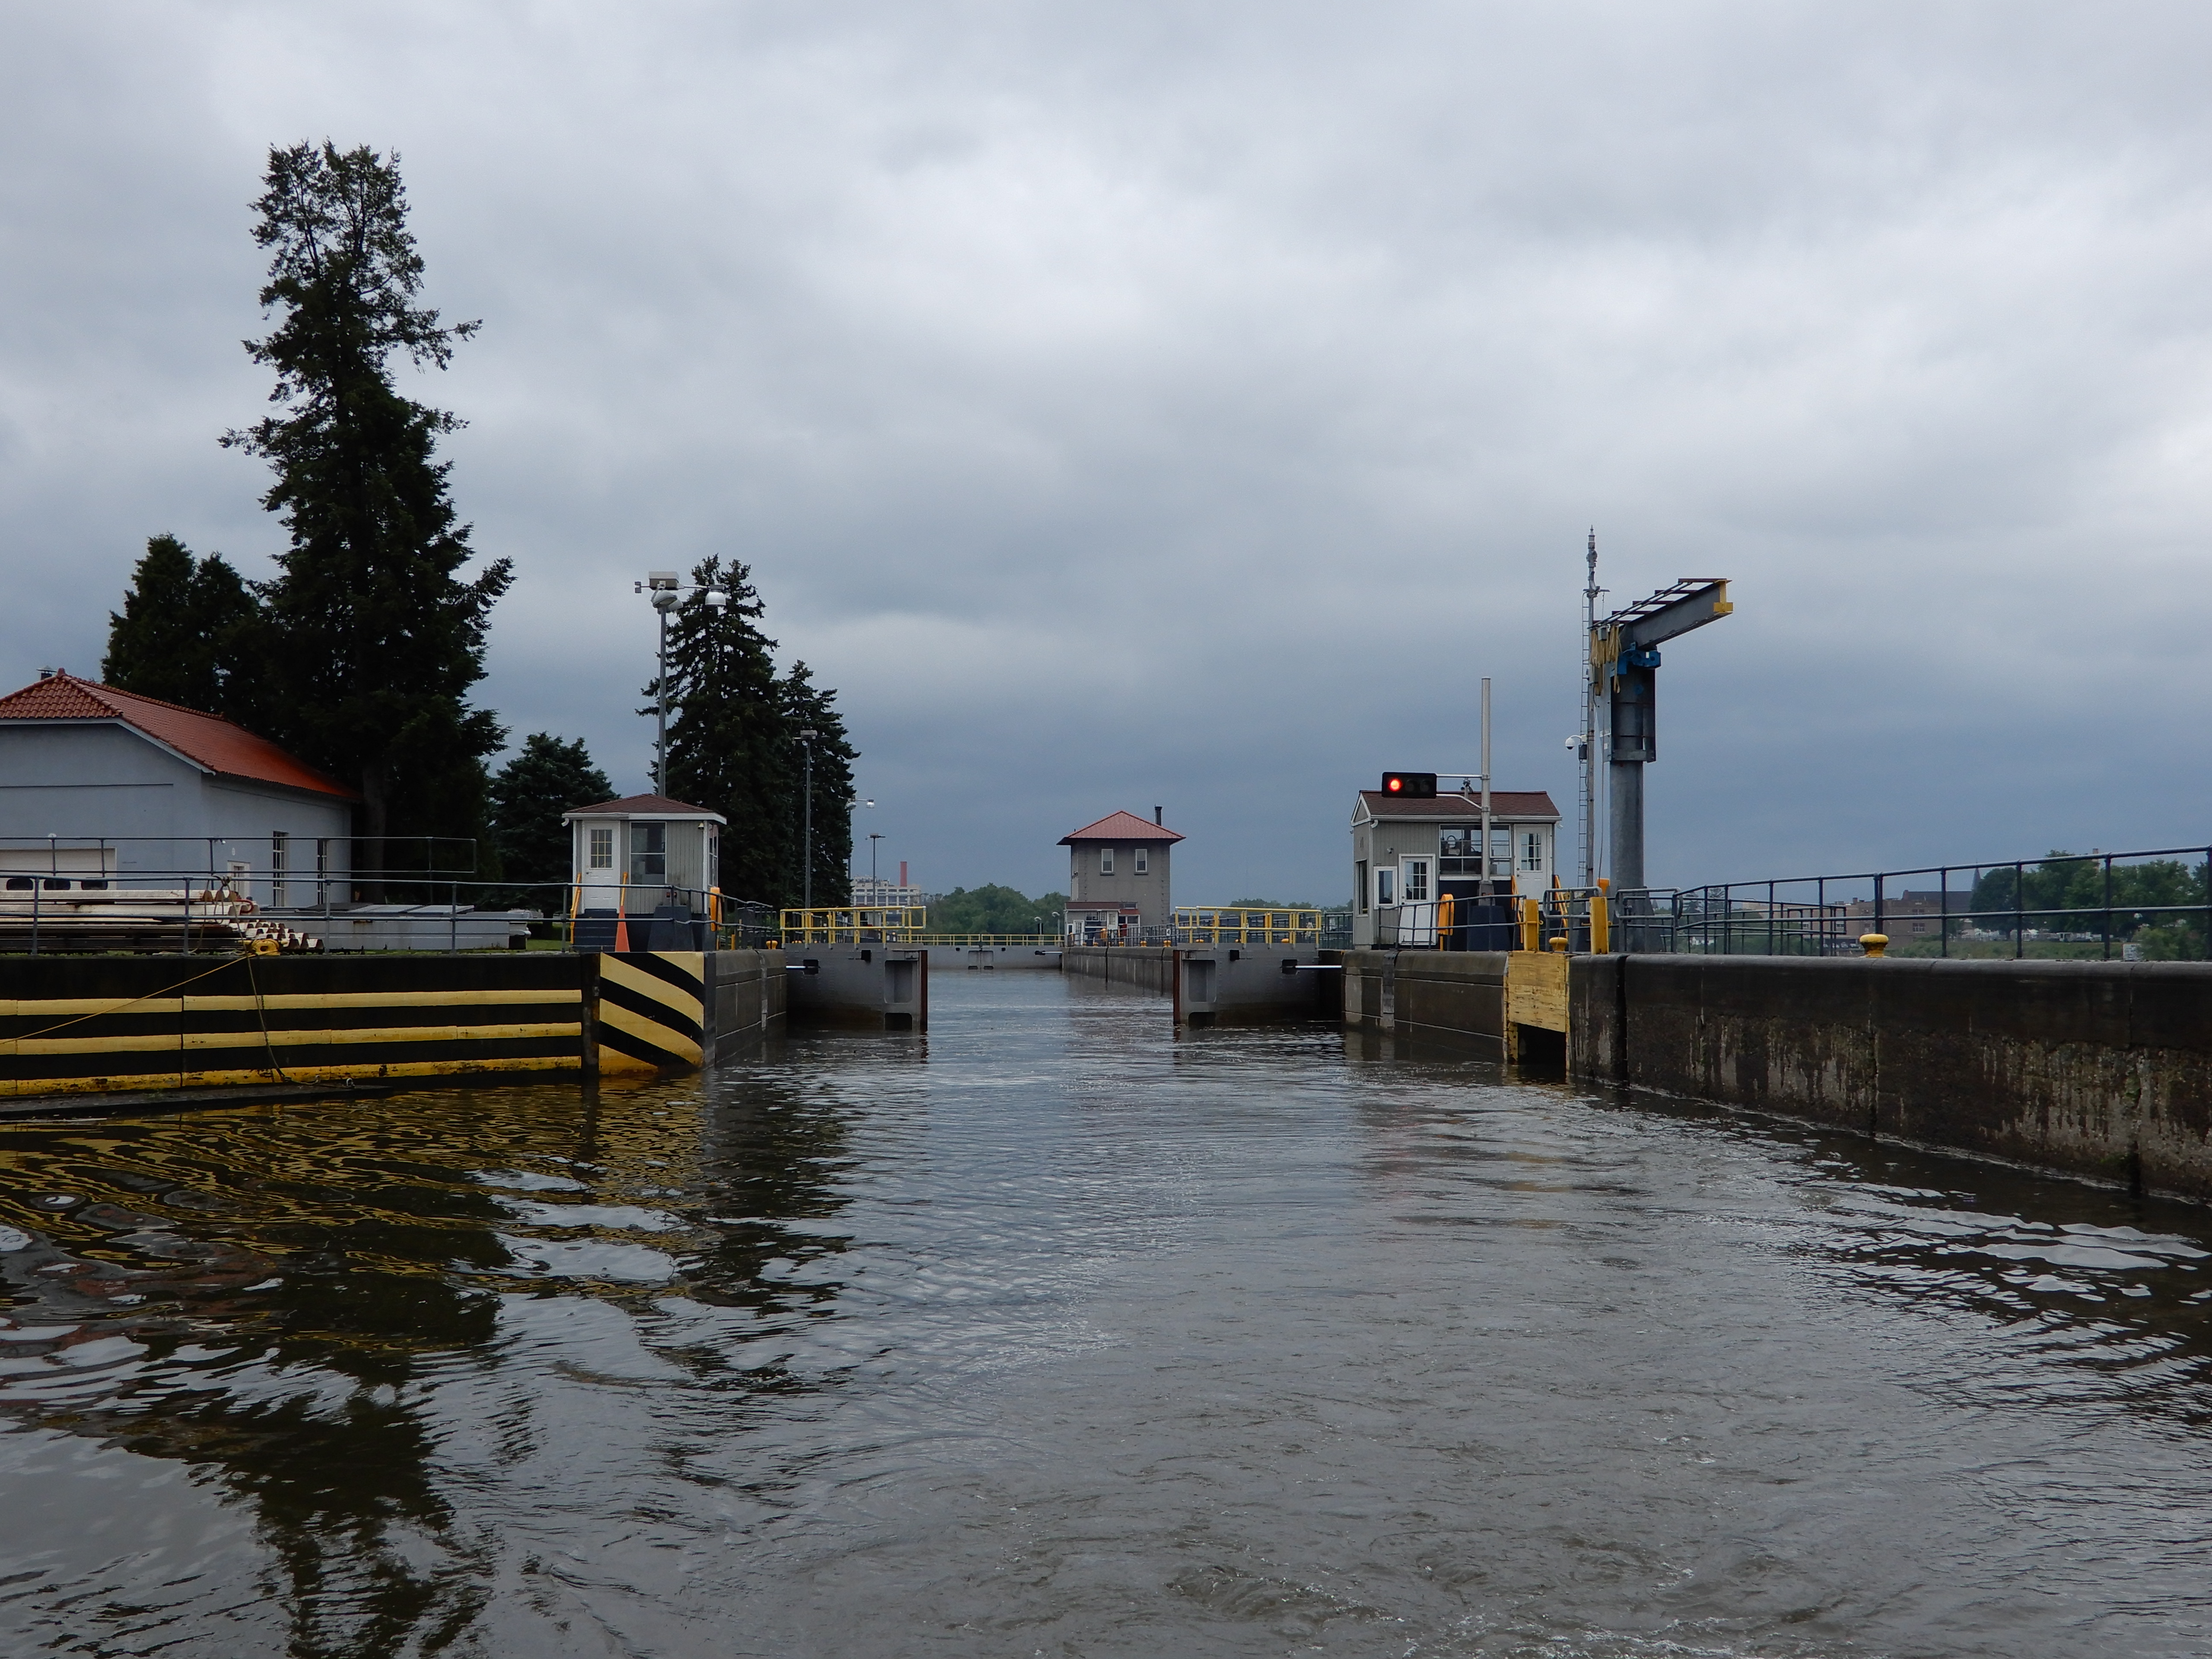 Looking back at the lock